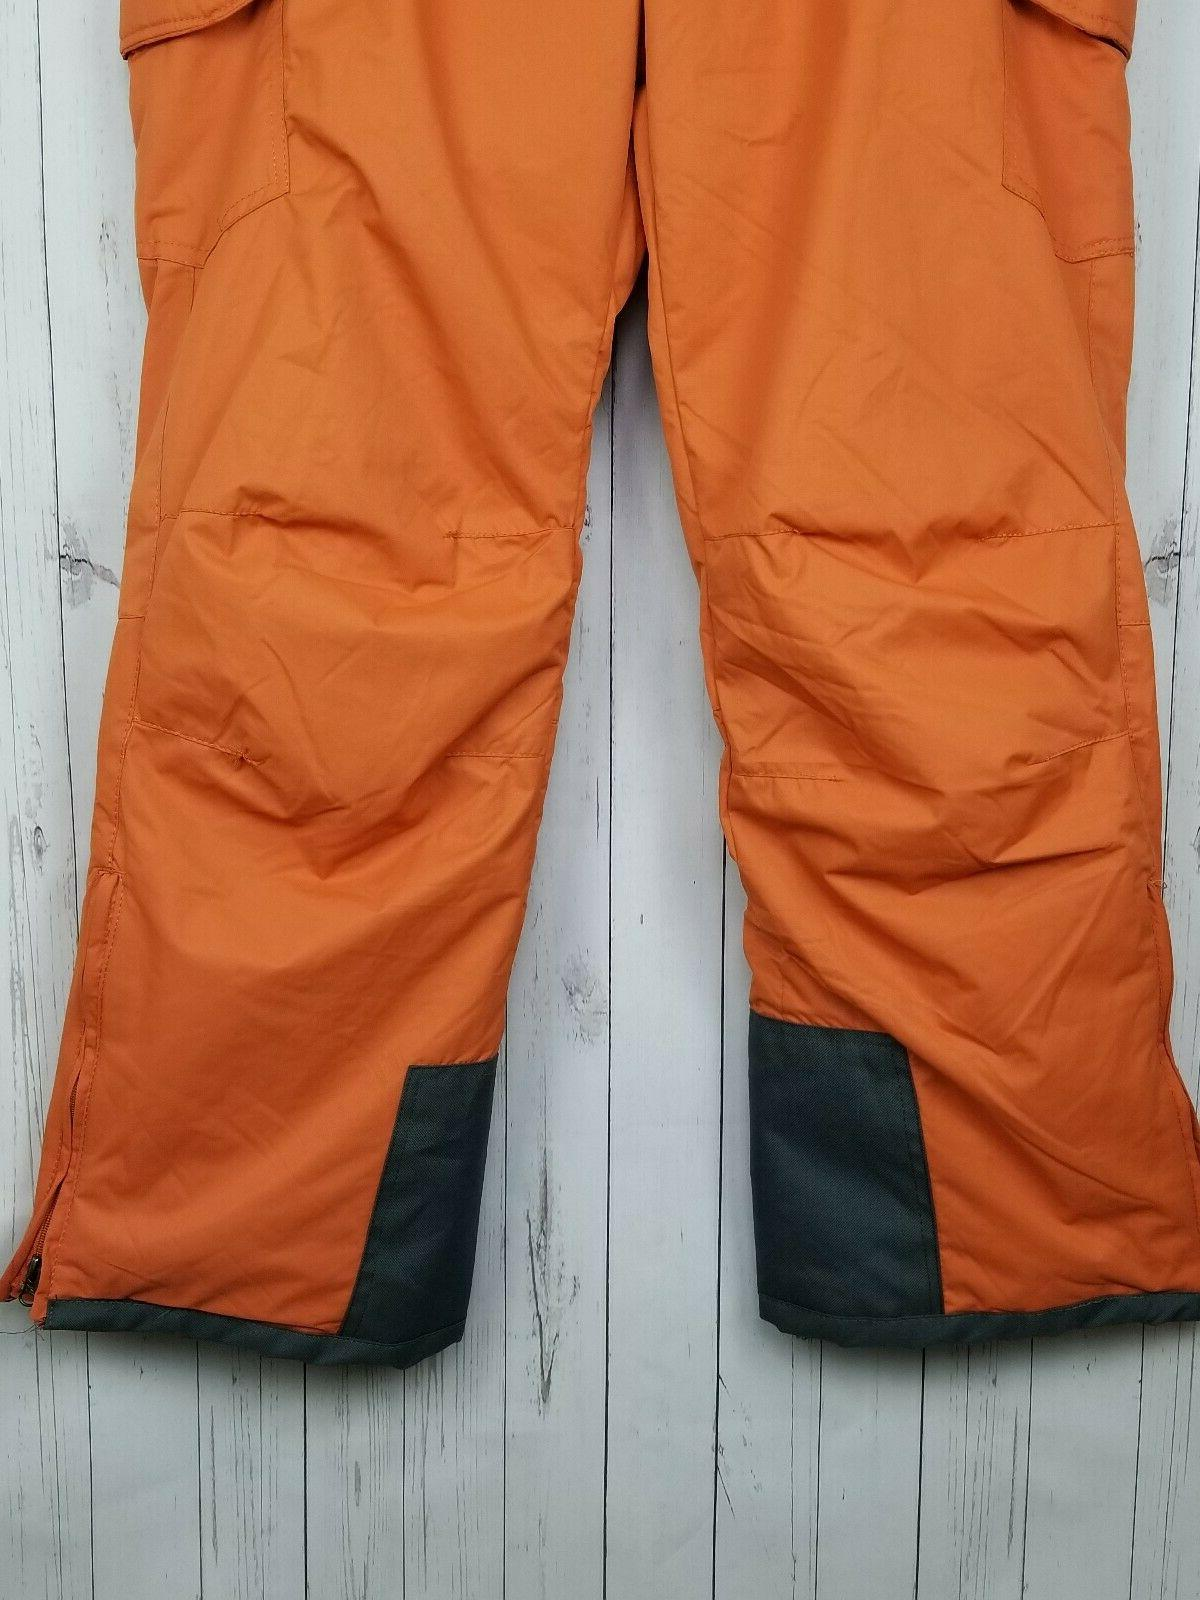 NWT Sports Cargo Pants Orange Ginger